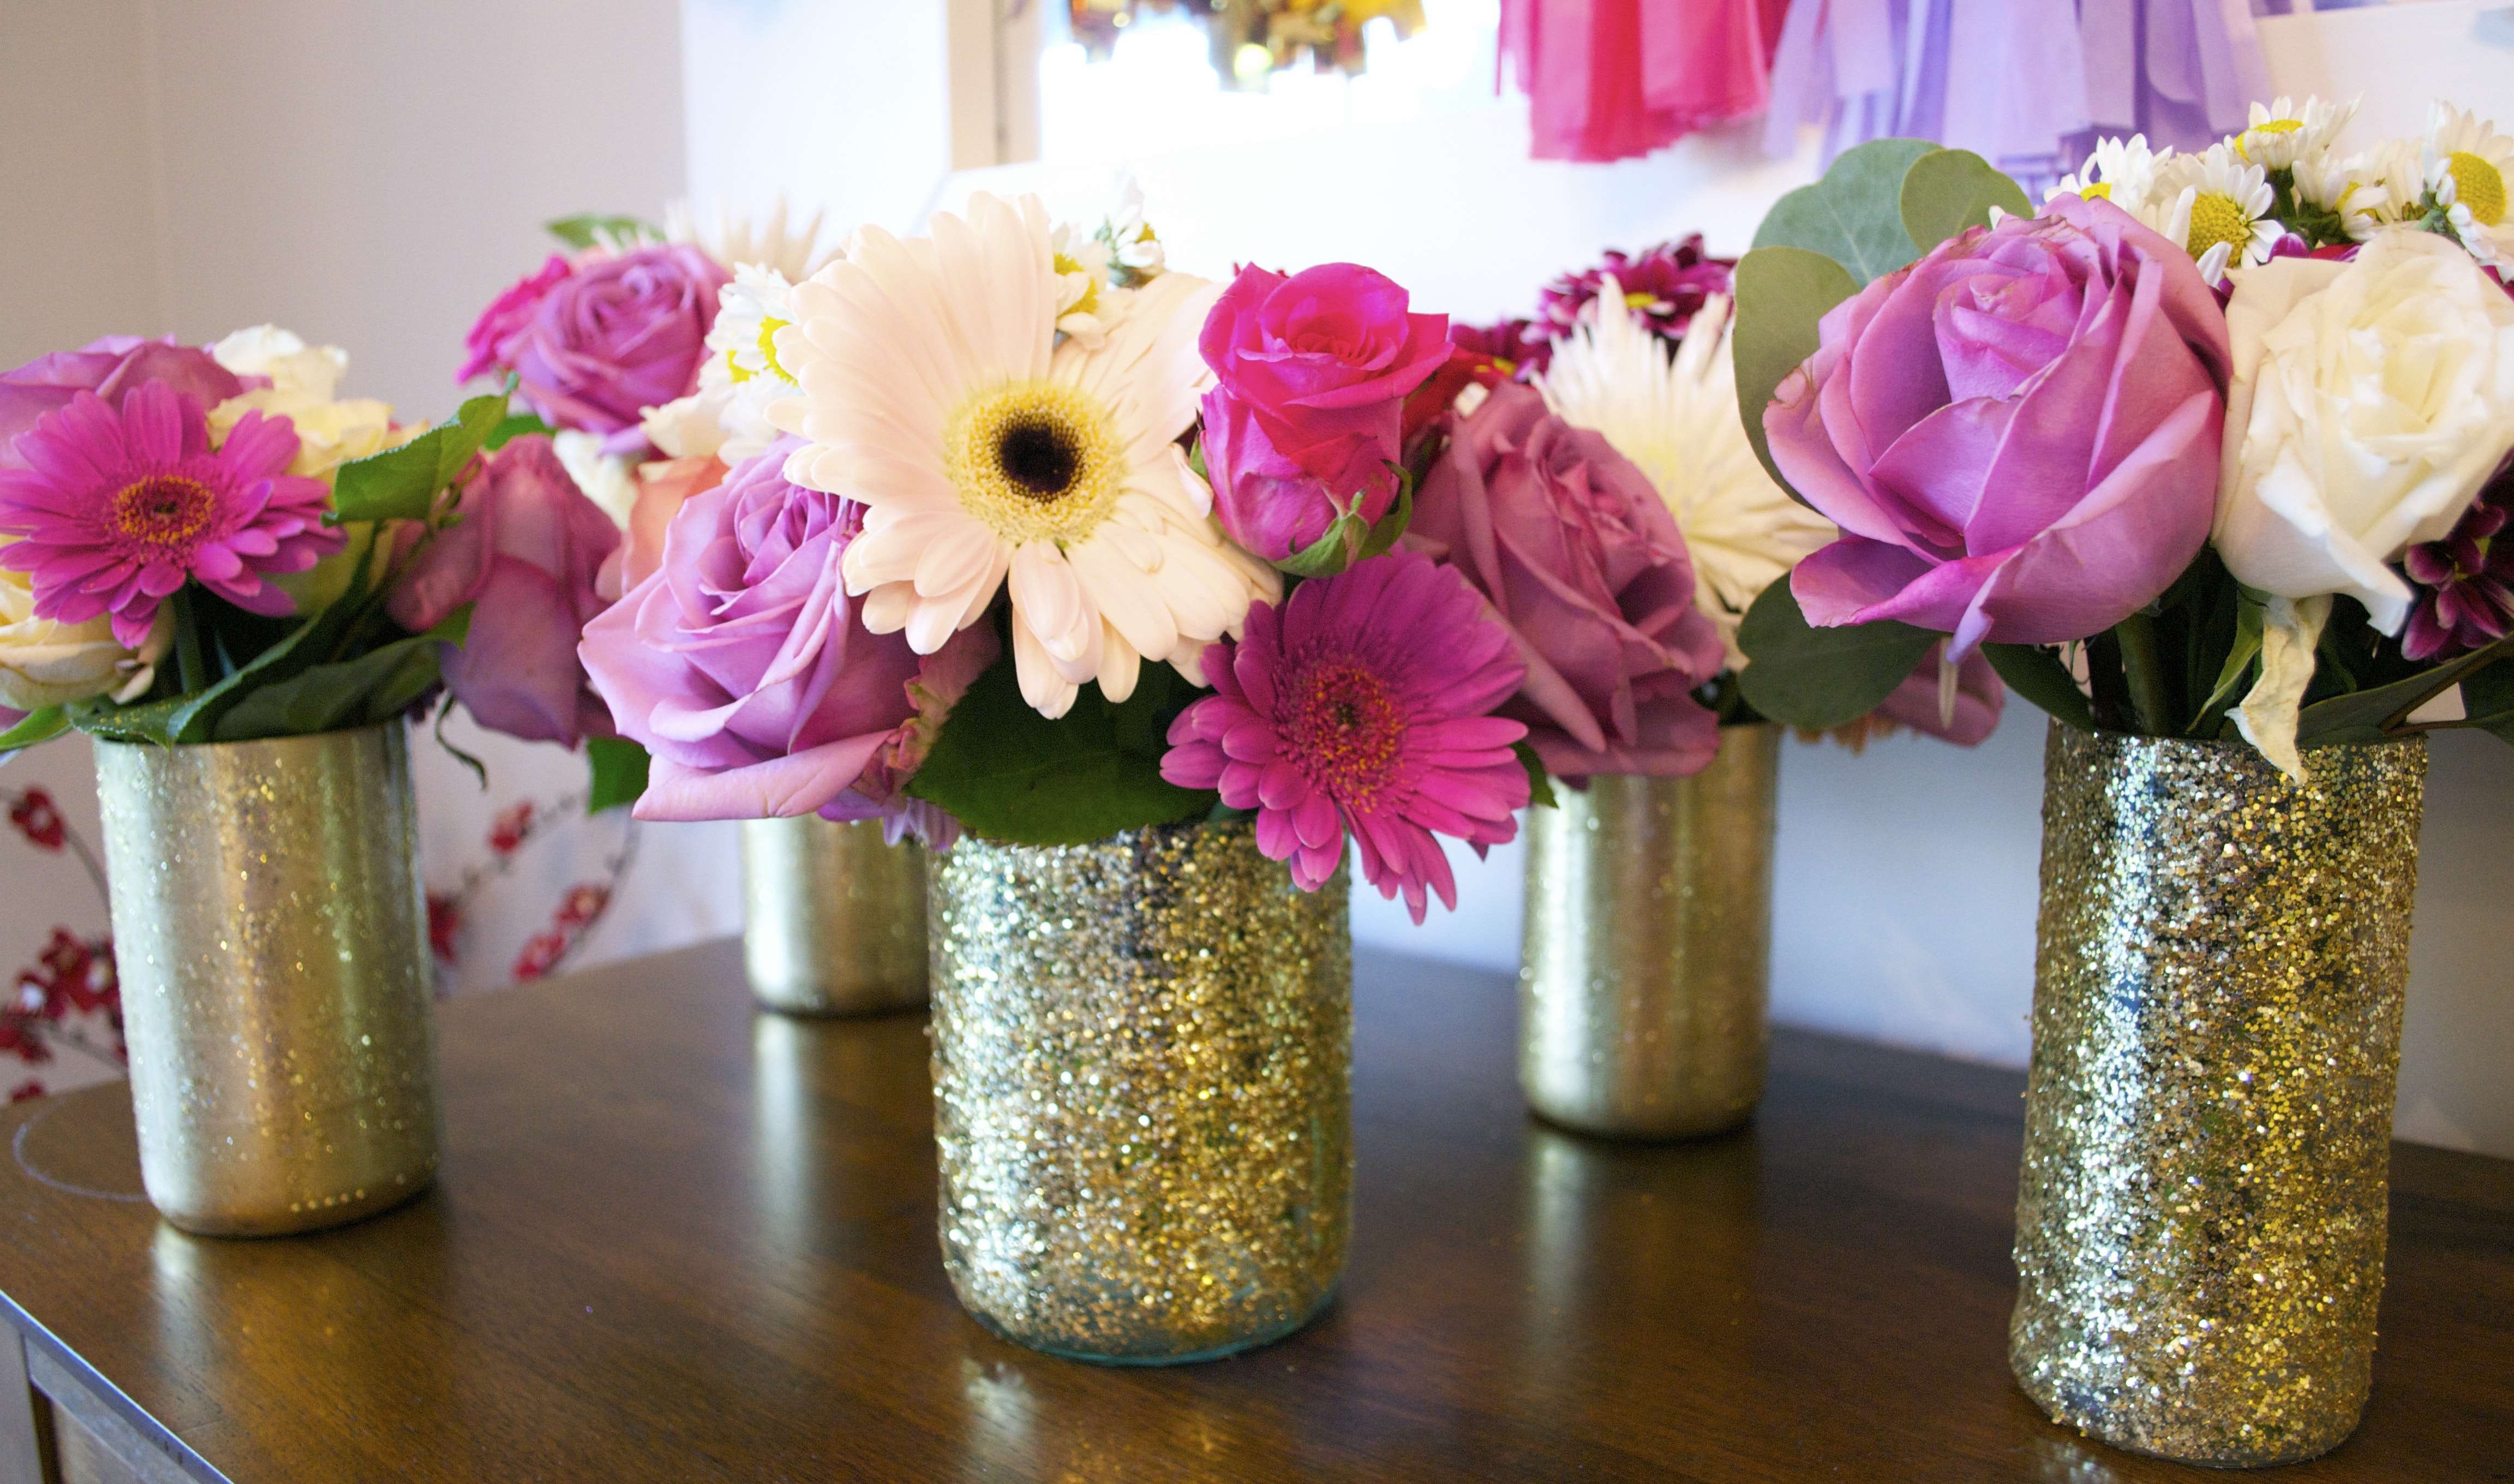 Soccer Ball Vase Of Things to Put In Vases Images What if Instead Of Flowers You Put with Things to Put In Vases Photograph 39 Awesome Vase Decoration Ideas Graphics Of Things to Put